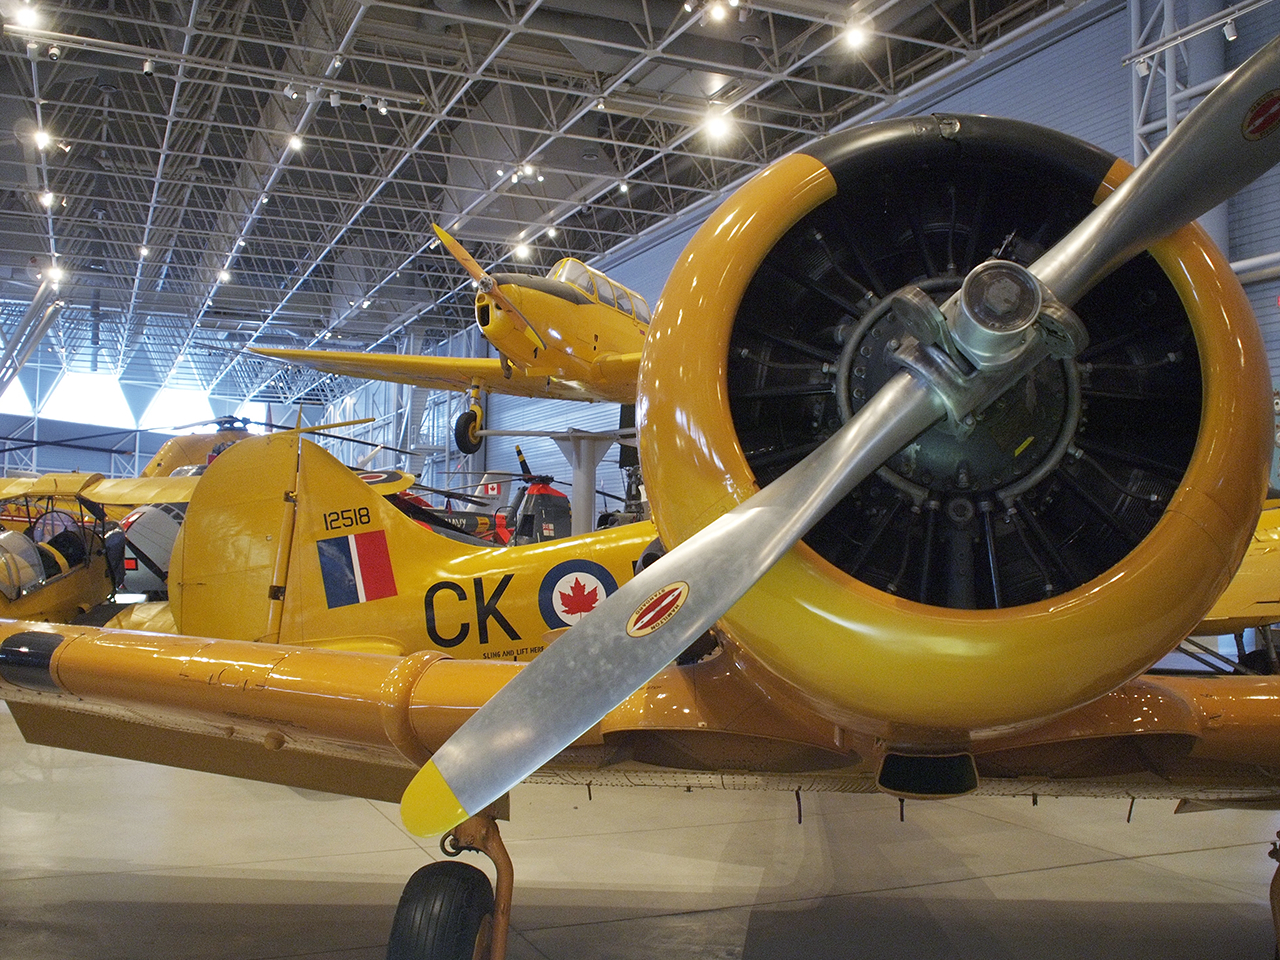 a yellow propeller aircraft